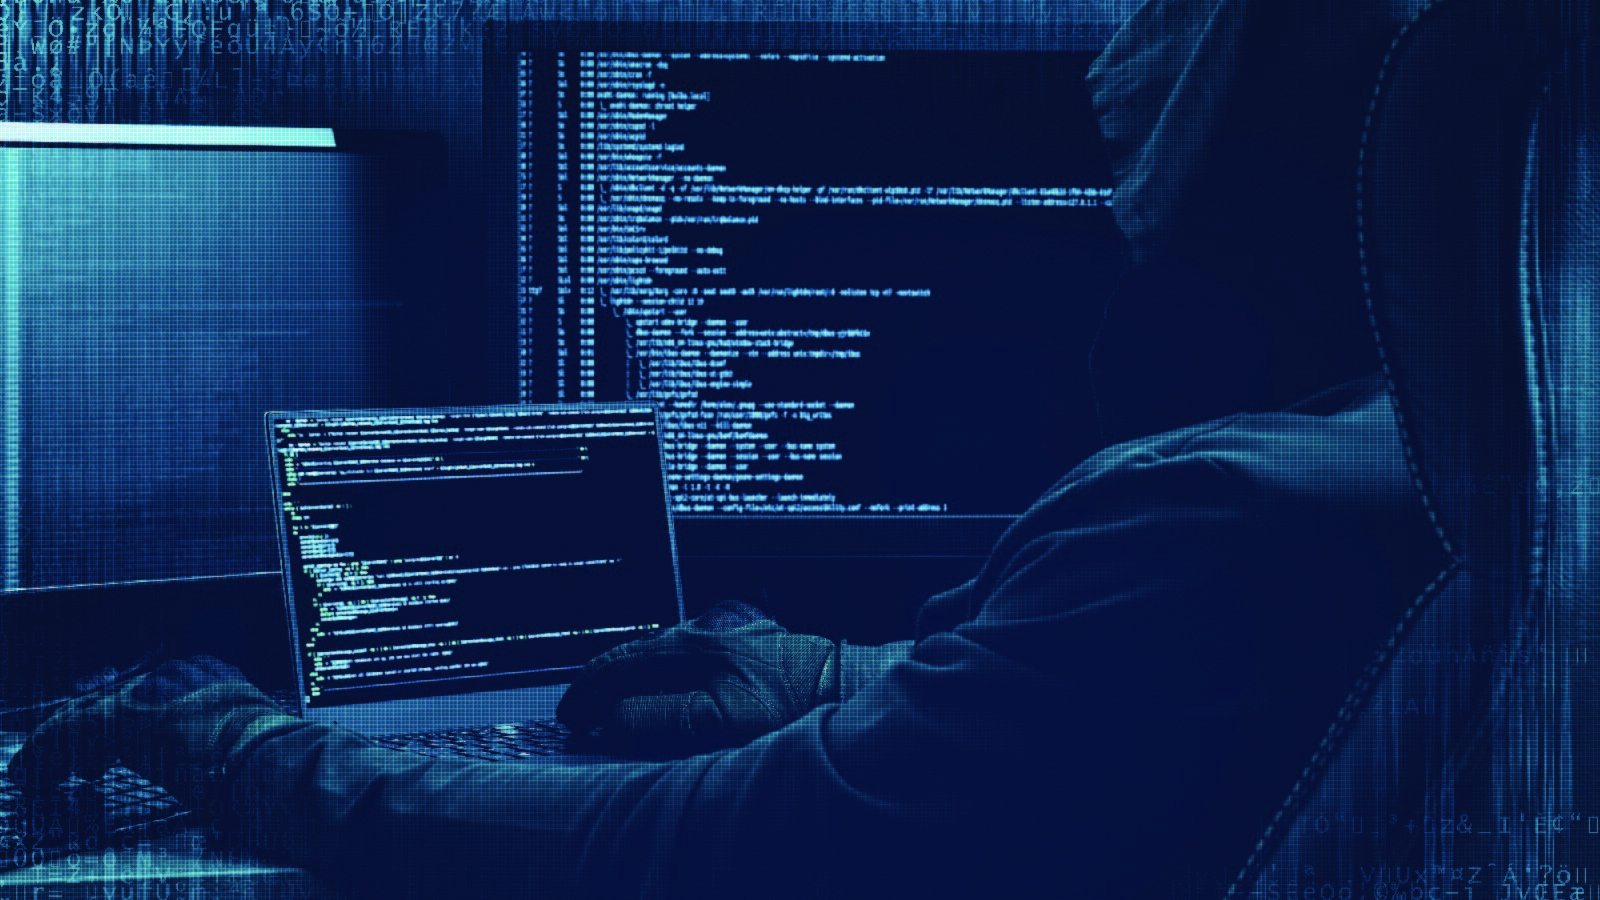 ISACA, cyber-attack, cybersecurity, COVID-19, coronavirus, pandemic, hackers, phishing alerts, remote working, work from home, security alert, remotely access services and remotely connected devices, risk matrix ISACA, cyber-attack, cyber security, COVID-19, coronavirus, pandemic, hackers, phishing alerts, remote working, work from home,